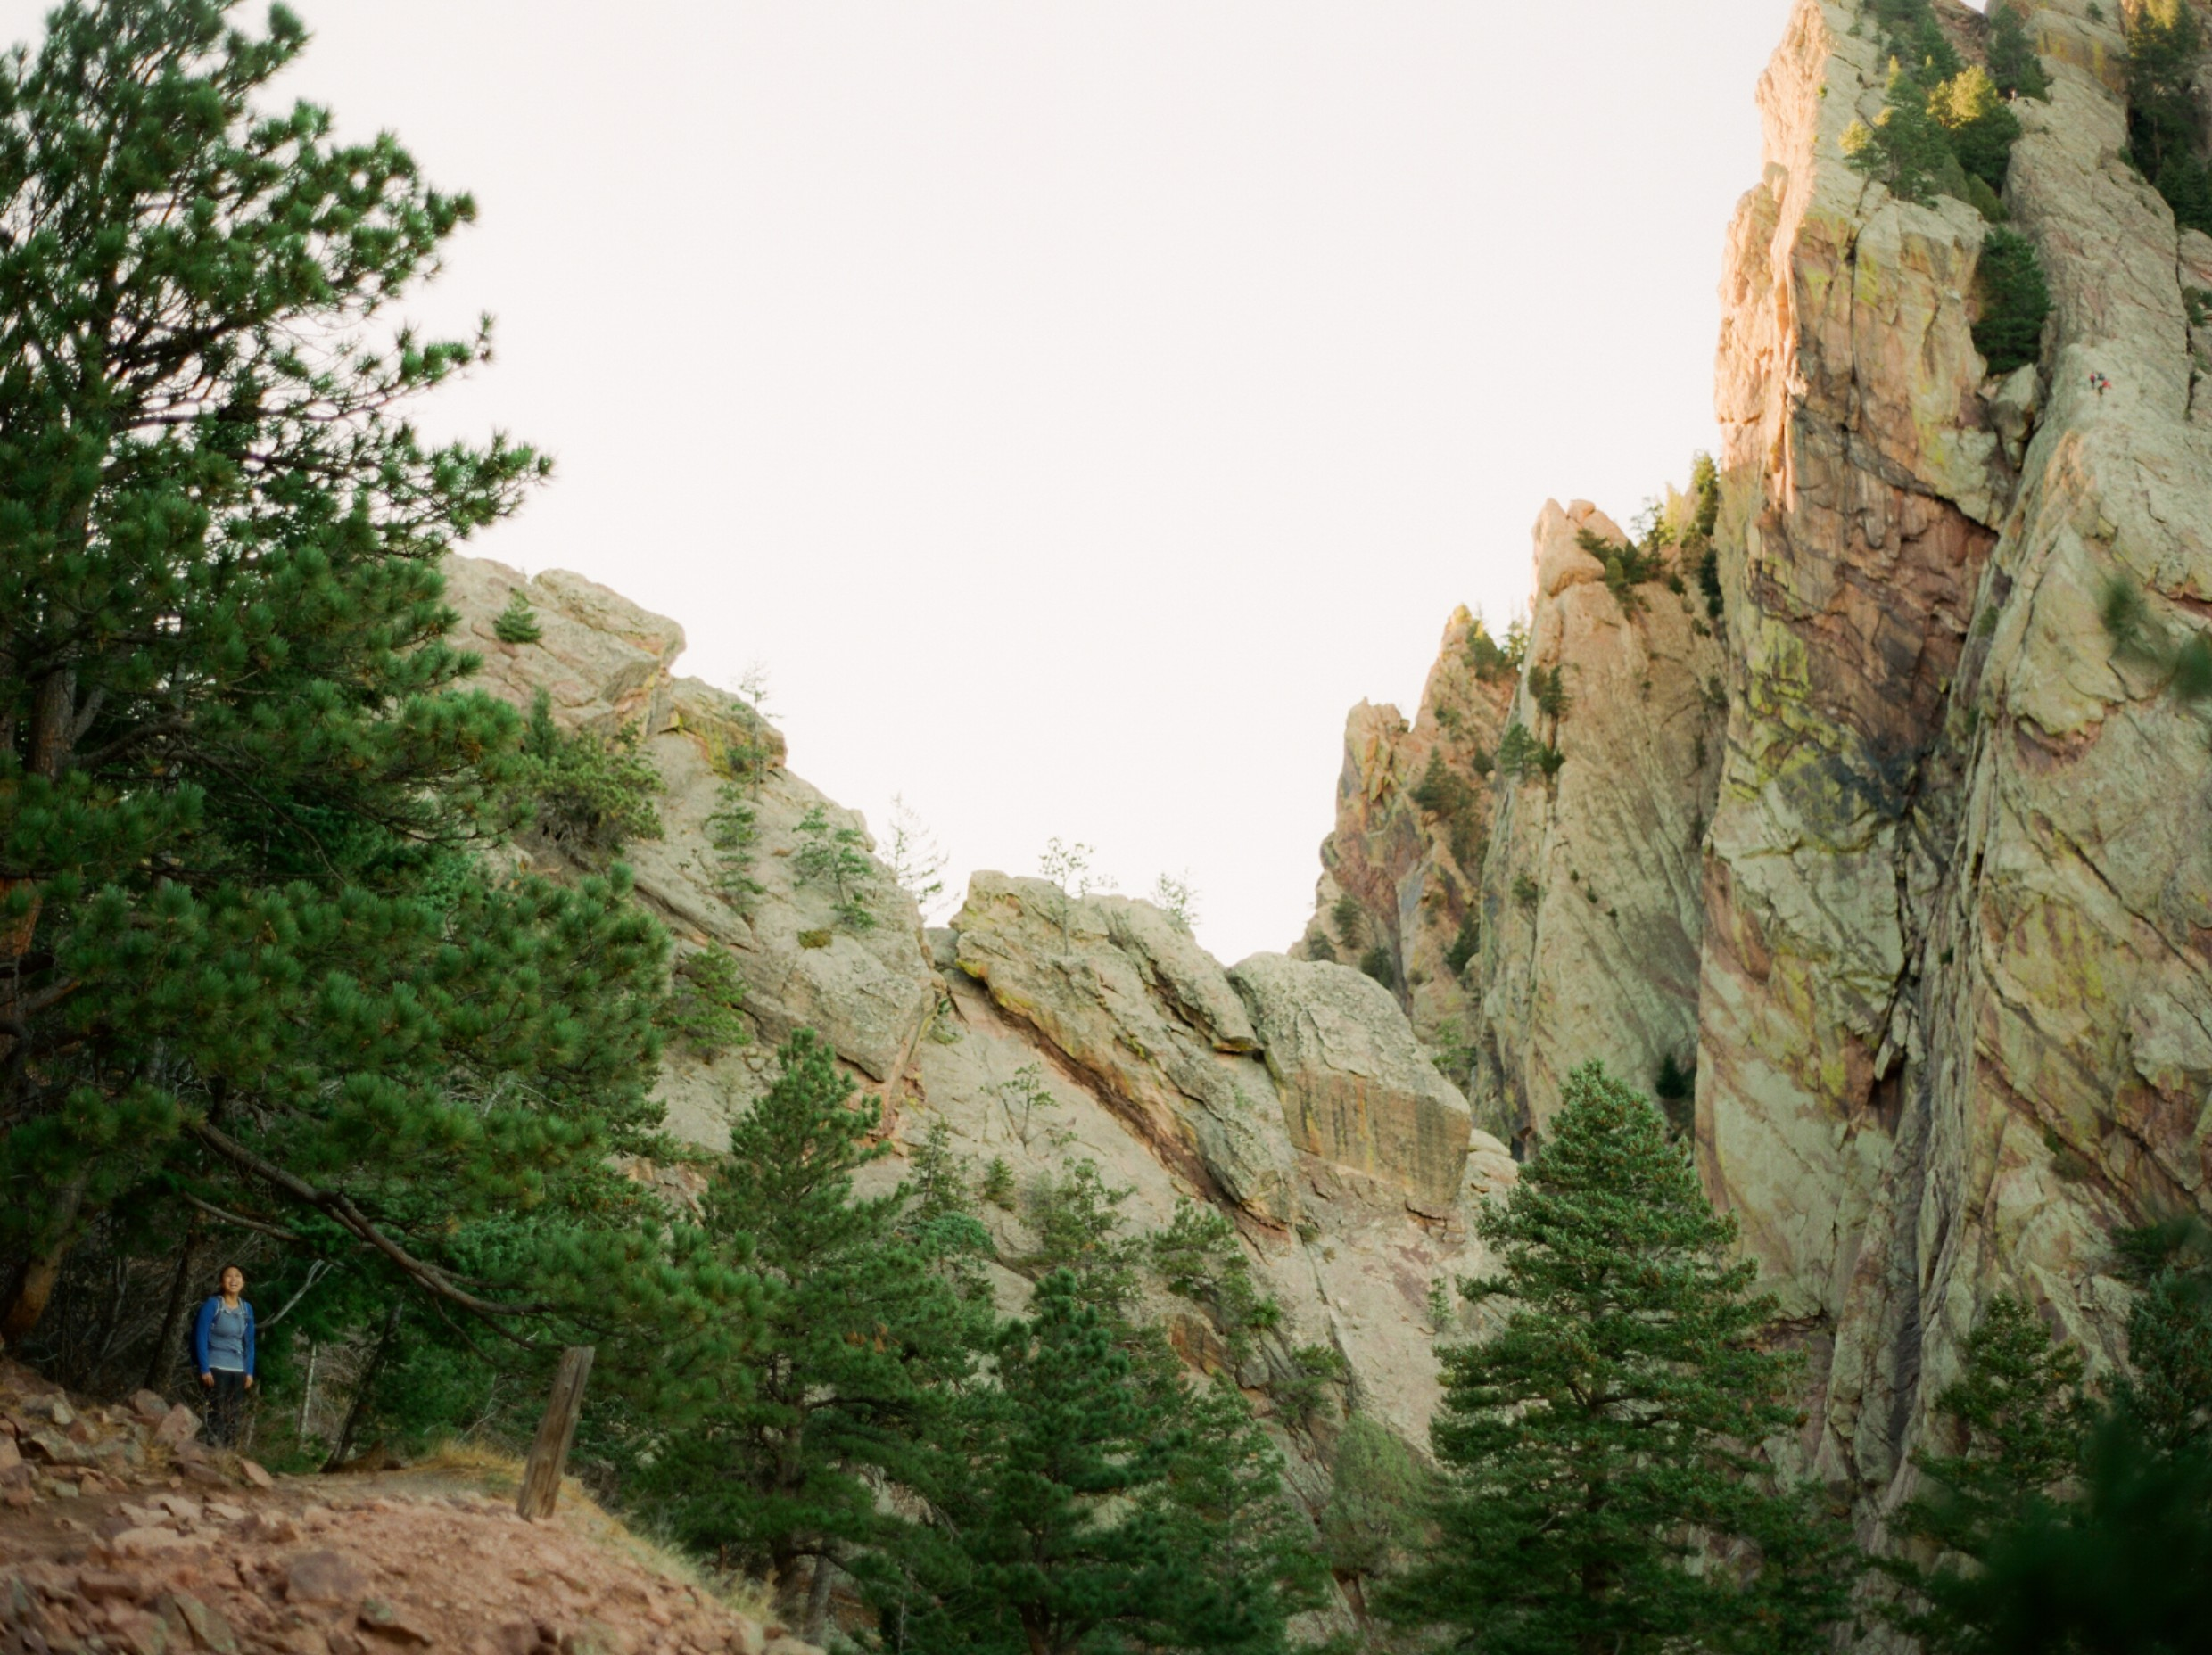 Rocky mountains national park cool and amazing how those douglas firs just grow on the cliffs sciox Image collections